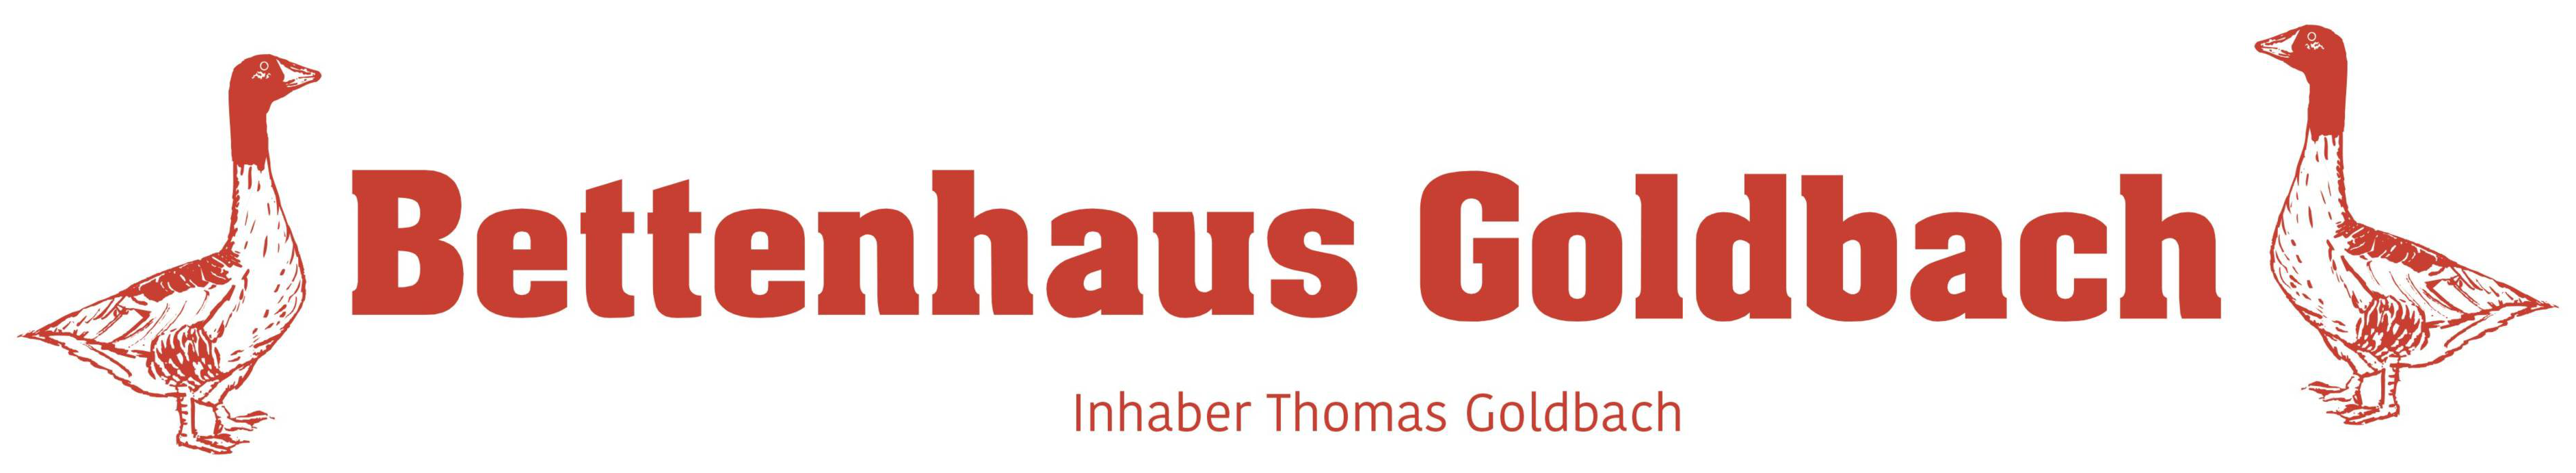 Bettenhaus Goldbach